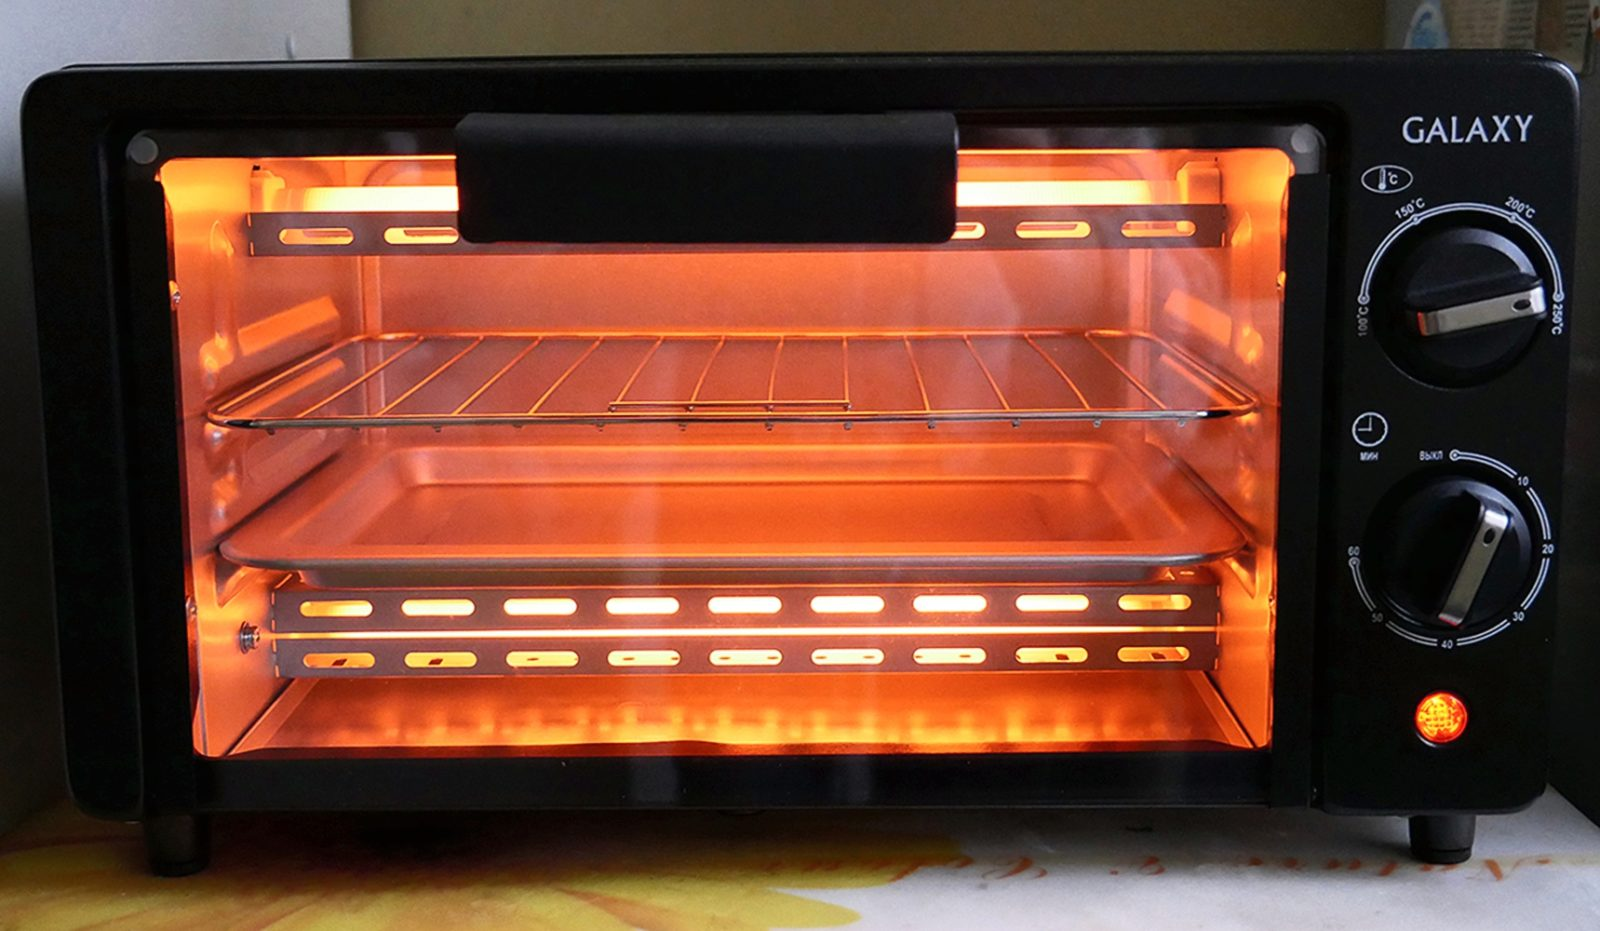 Review On The Galaxy Gl 2619 Mini Oven